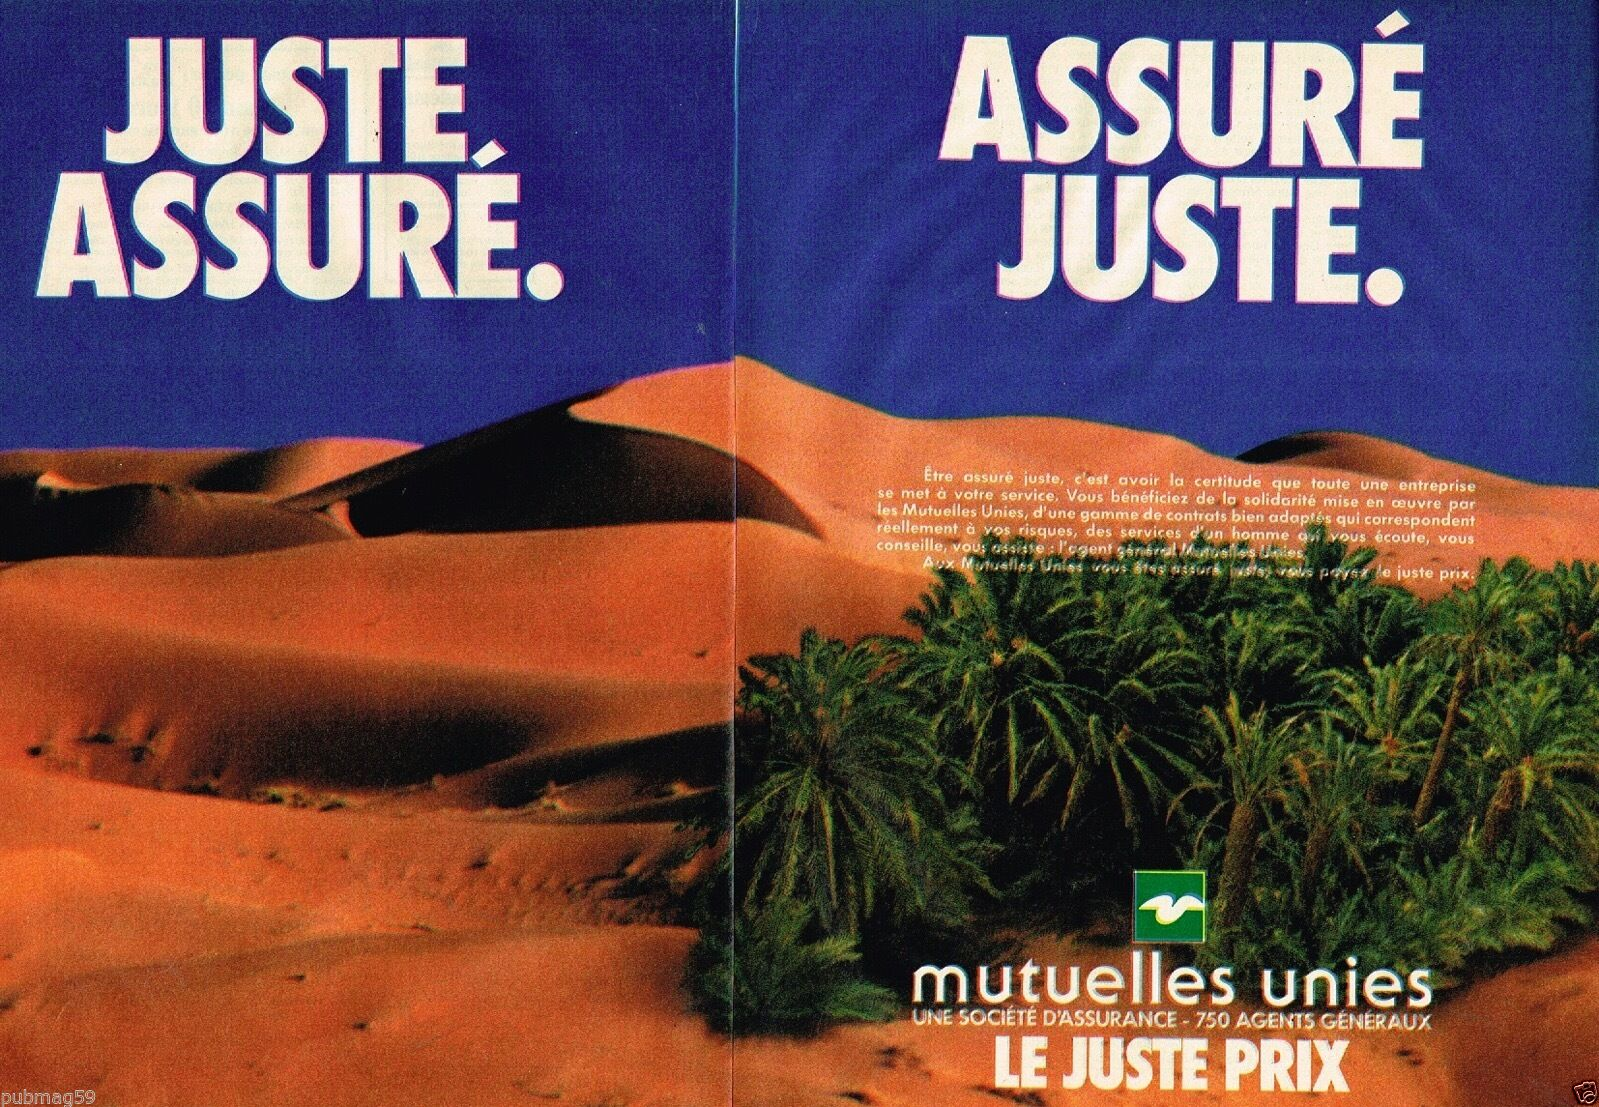 1984 Mutuelles unies